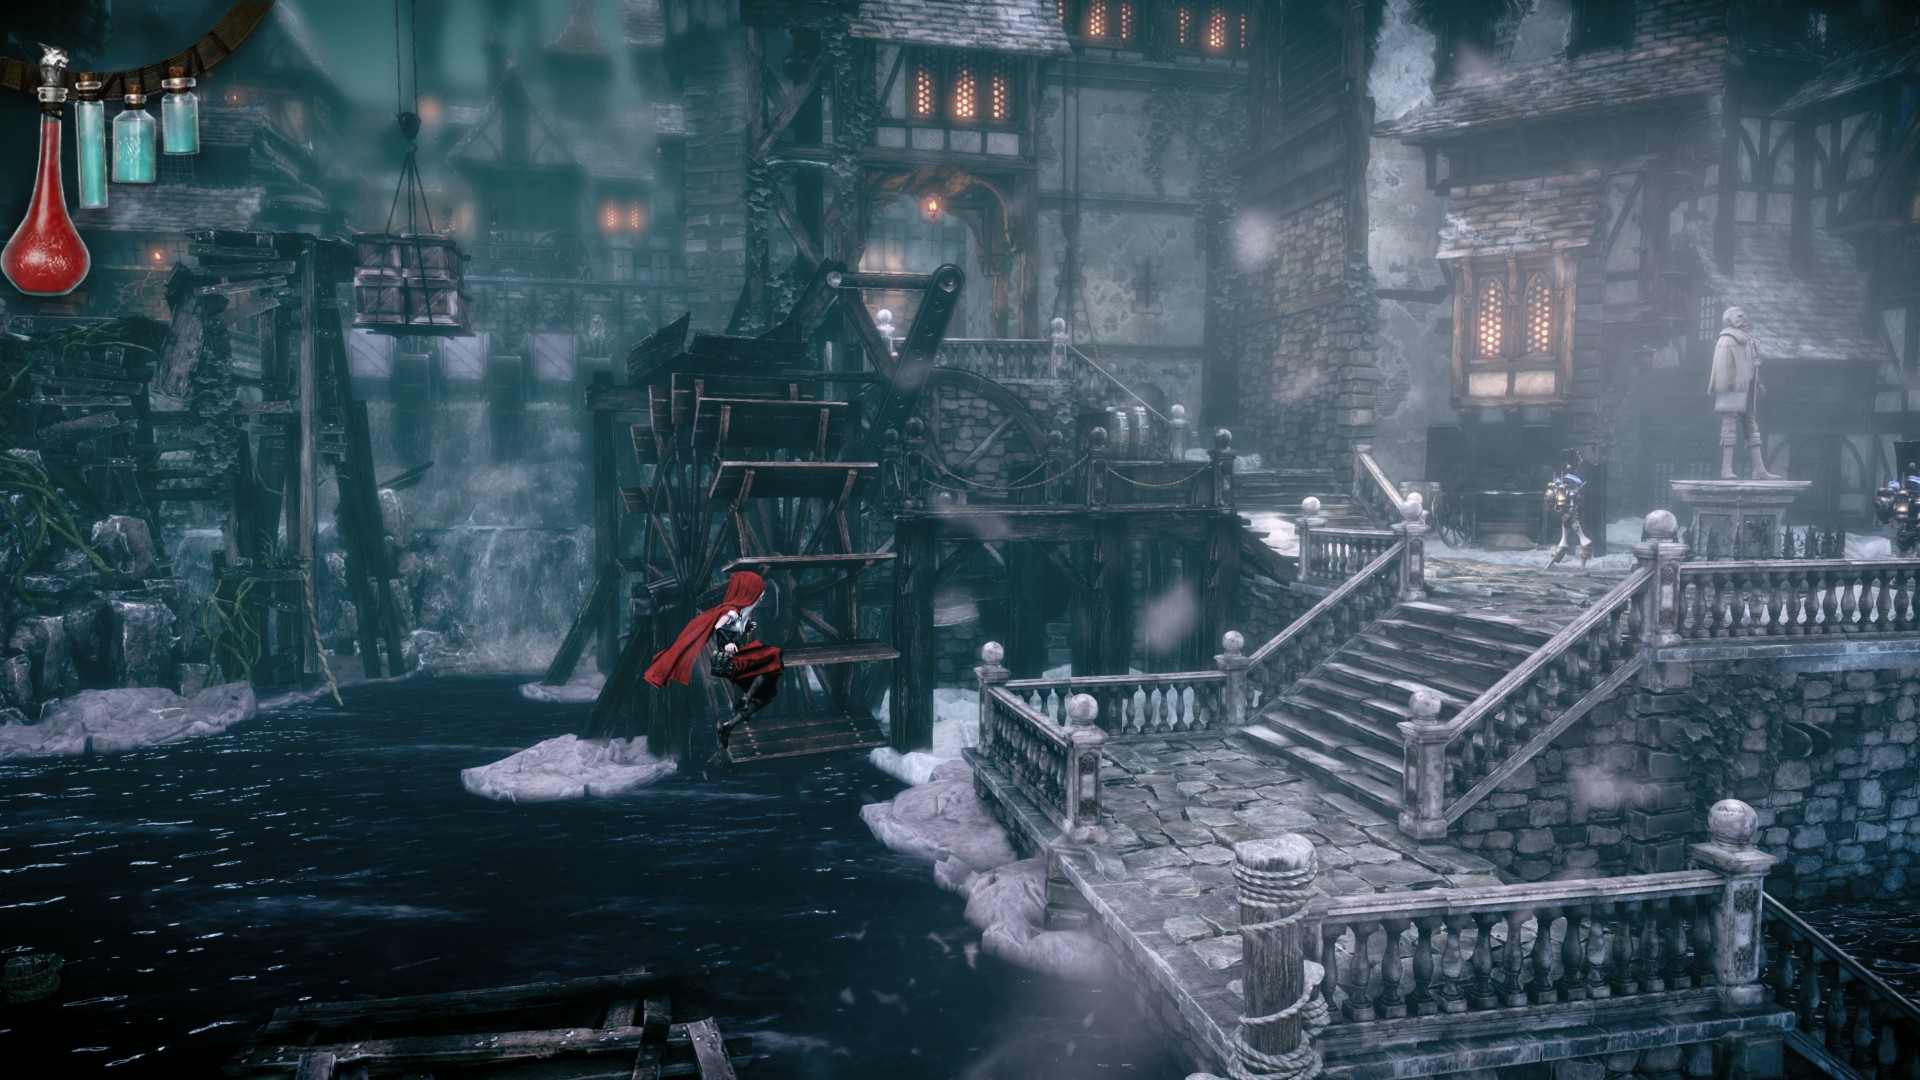 Woolfe: The Red Hood Diaries, Best Games 2015, Best Adventure Games 2015, Arcade, Steampunk, Fairy tale, screenshot, PC, PS4, Xbox one (horizontal)